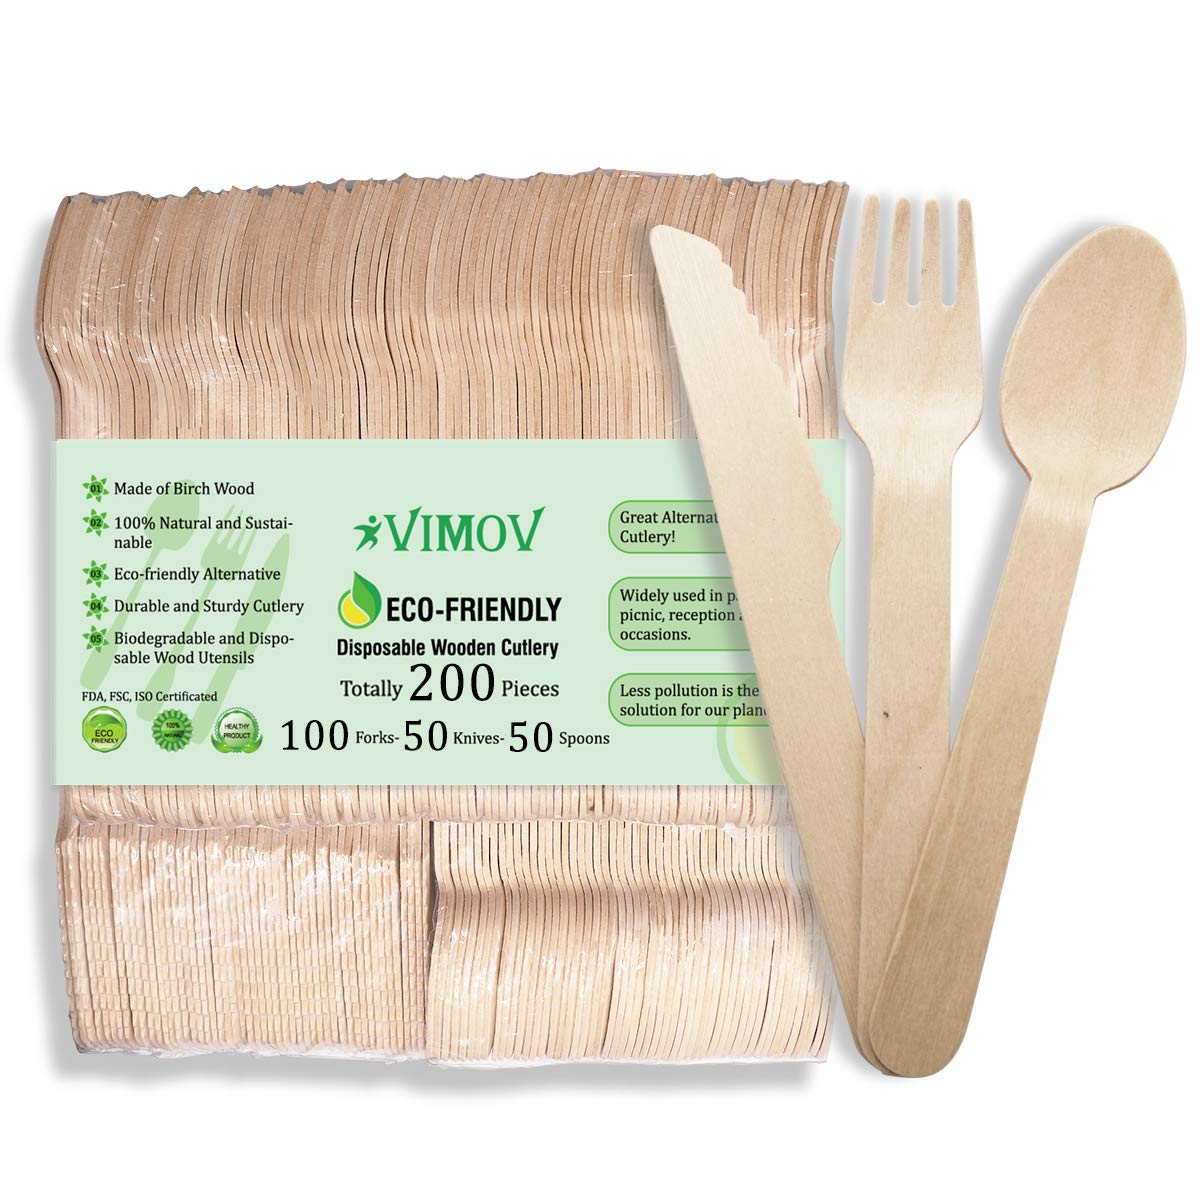 Disposable Wooden Cutlery - Biodegradable Compostable Wooden Utensils for Party, Wedding, Picnics, BBQ, Family Events (100pcs) VIMOV